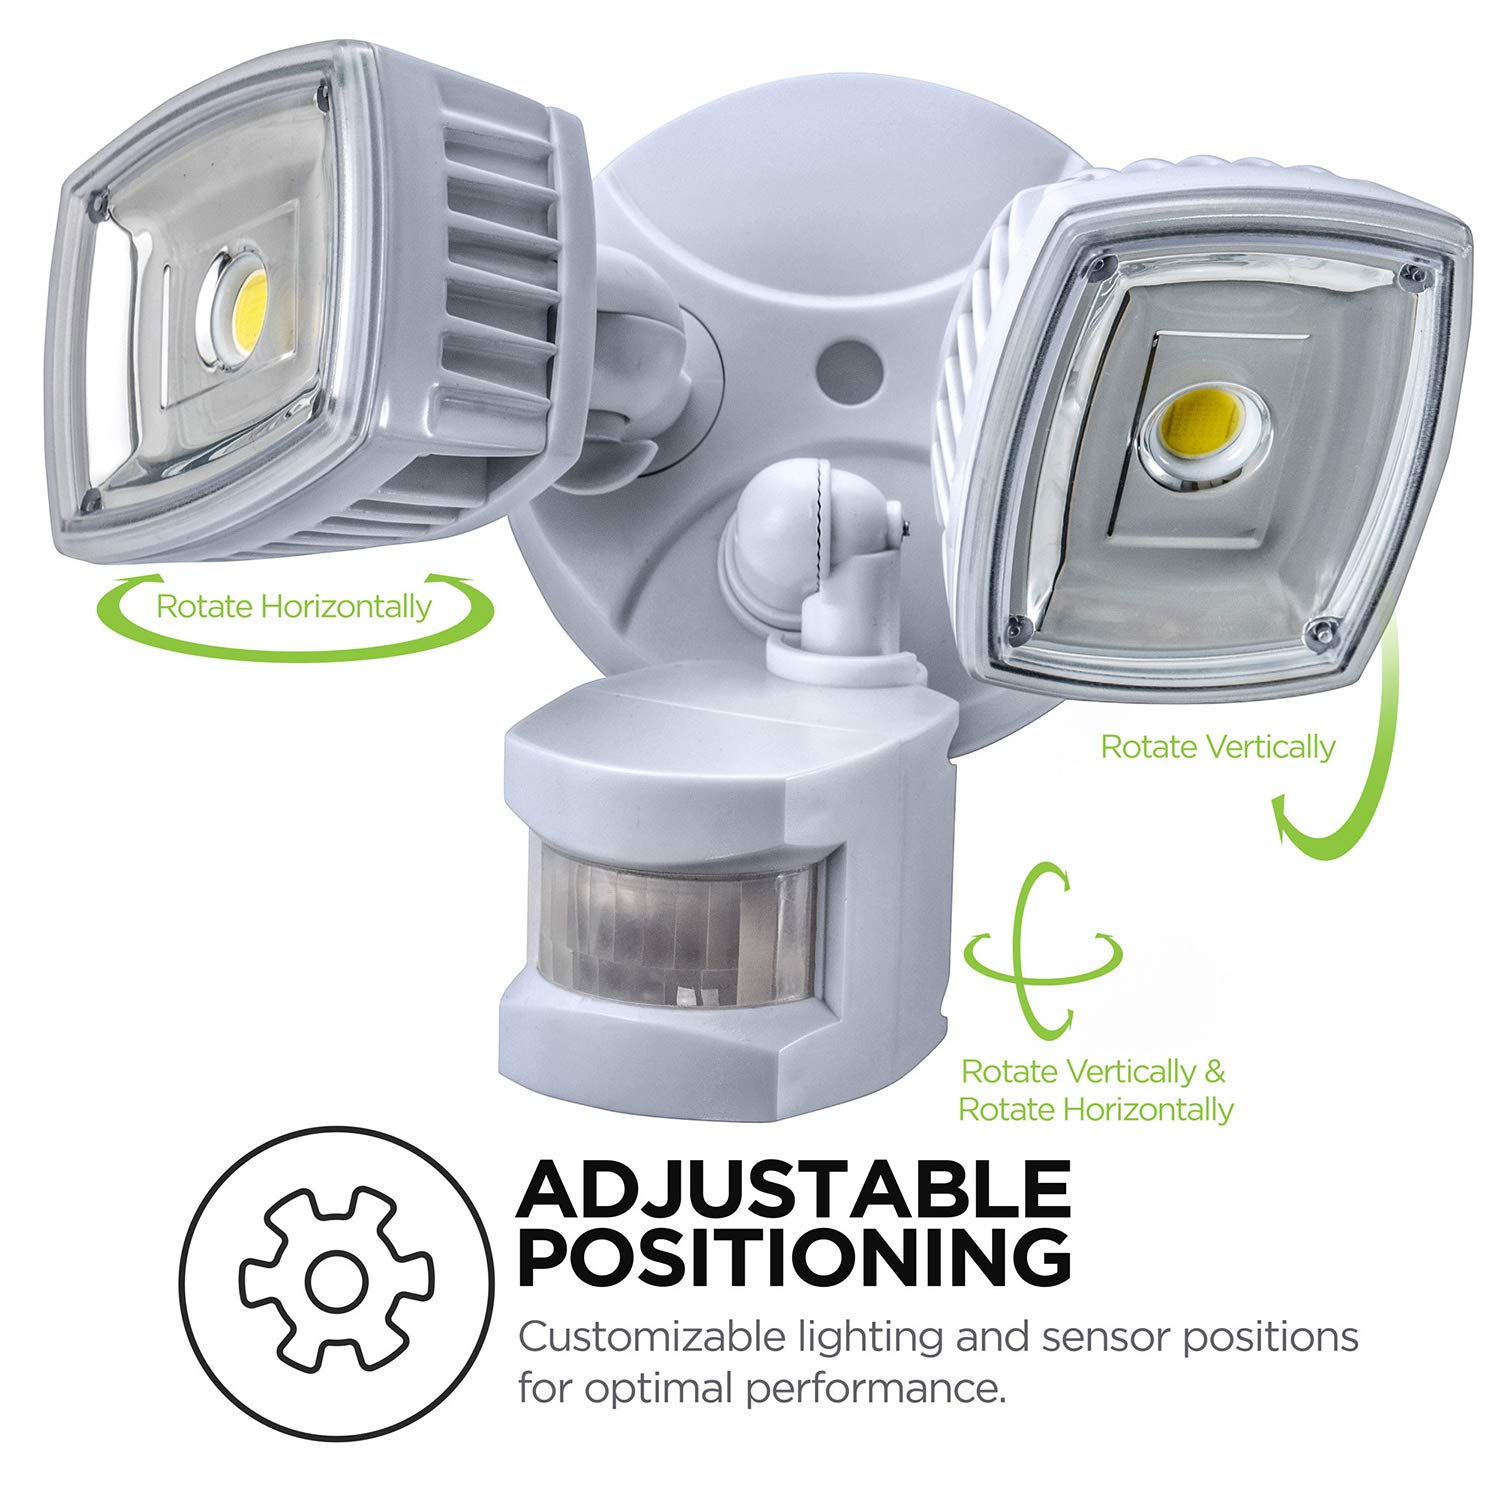 Home Zone ES00730U Security LED Motion Sensor Flood Lights, Outdoor Weatherproof Ultra Bright 5000K, White by Home Zone (Image #4)